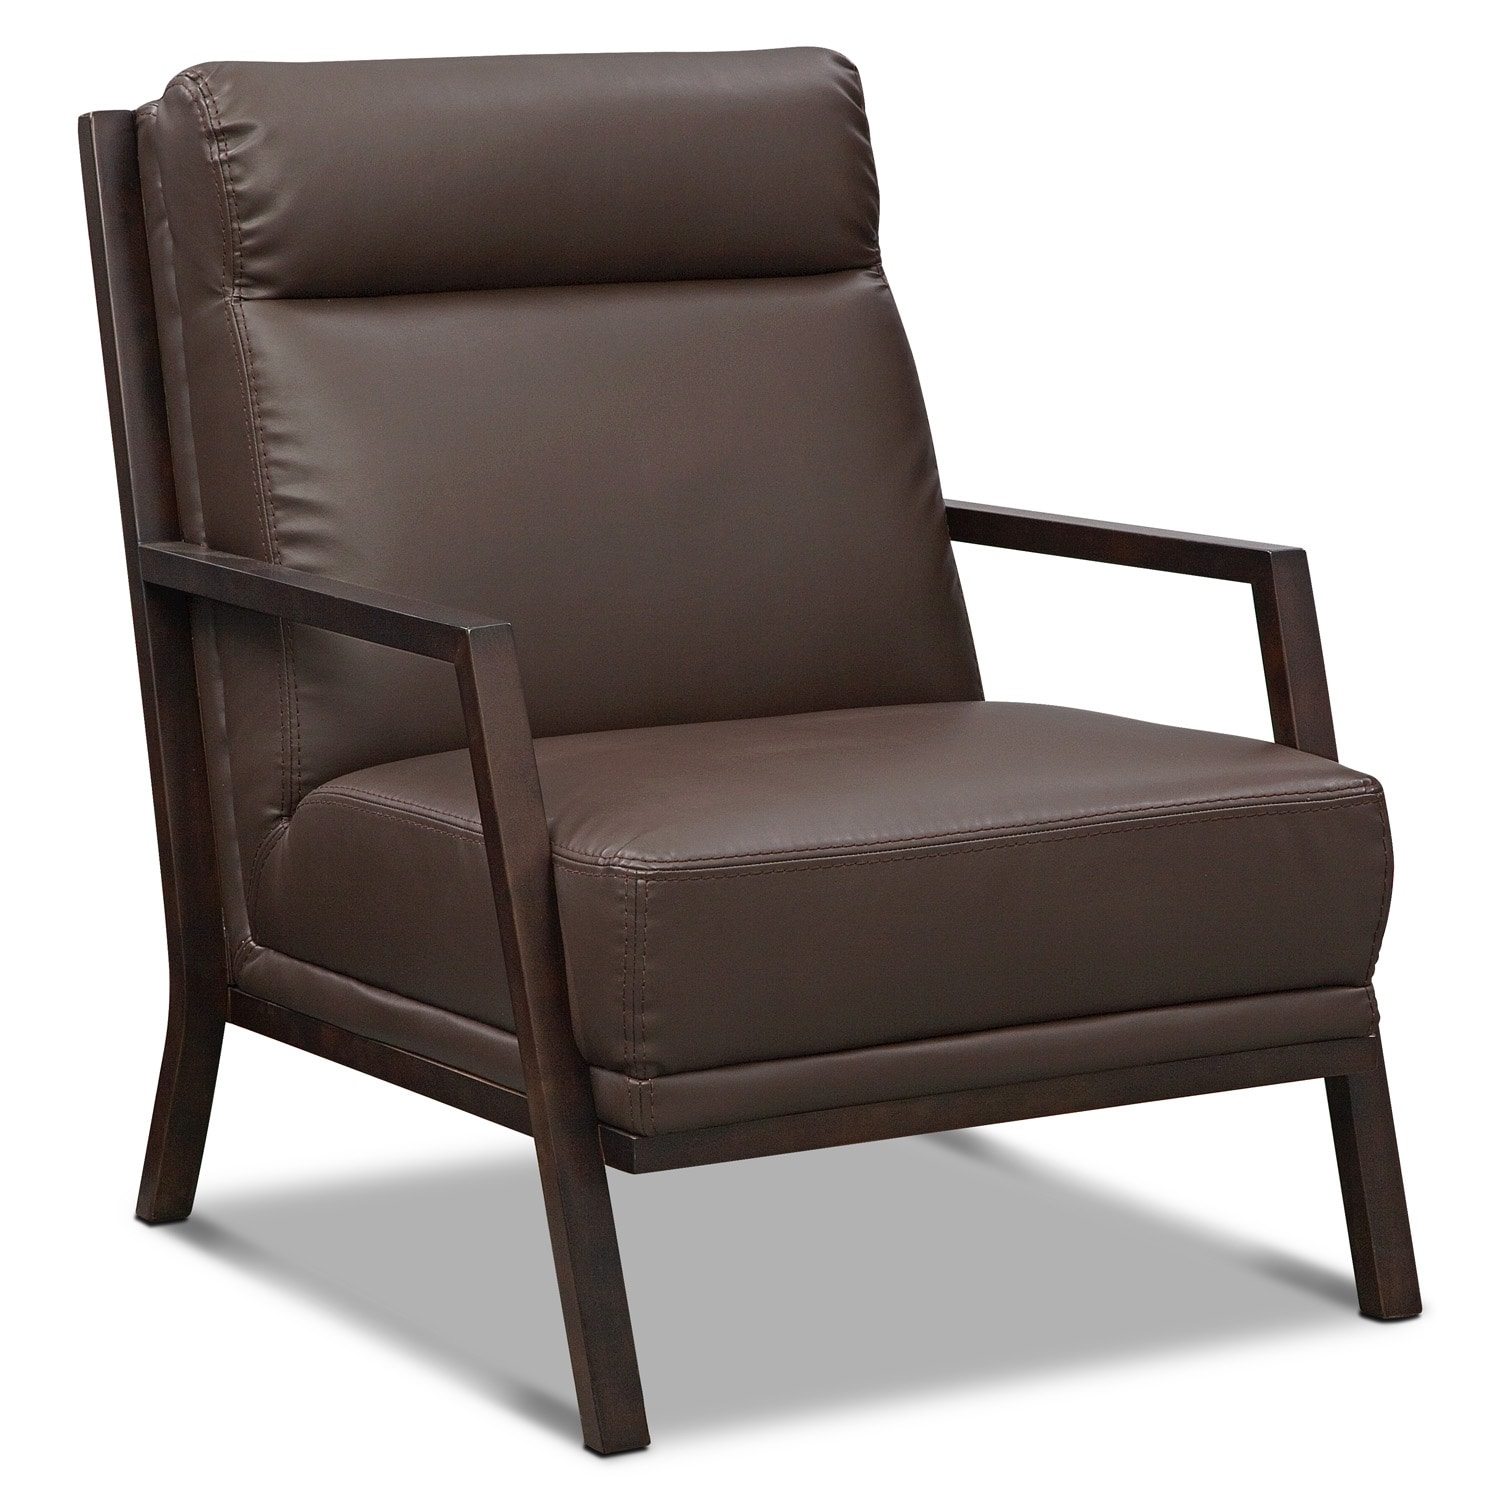 Living Room Furniture - Bowery Accent Chair - Brown